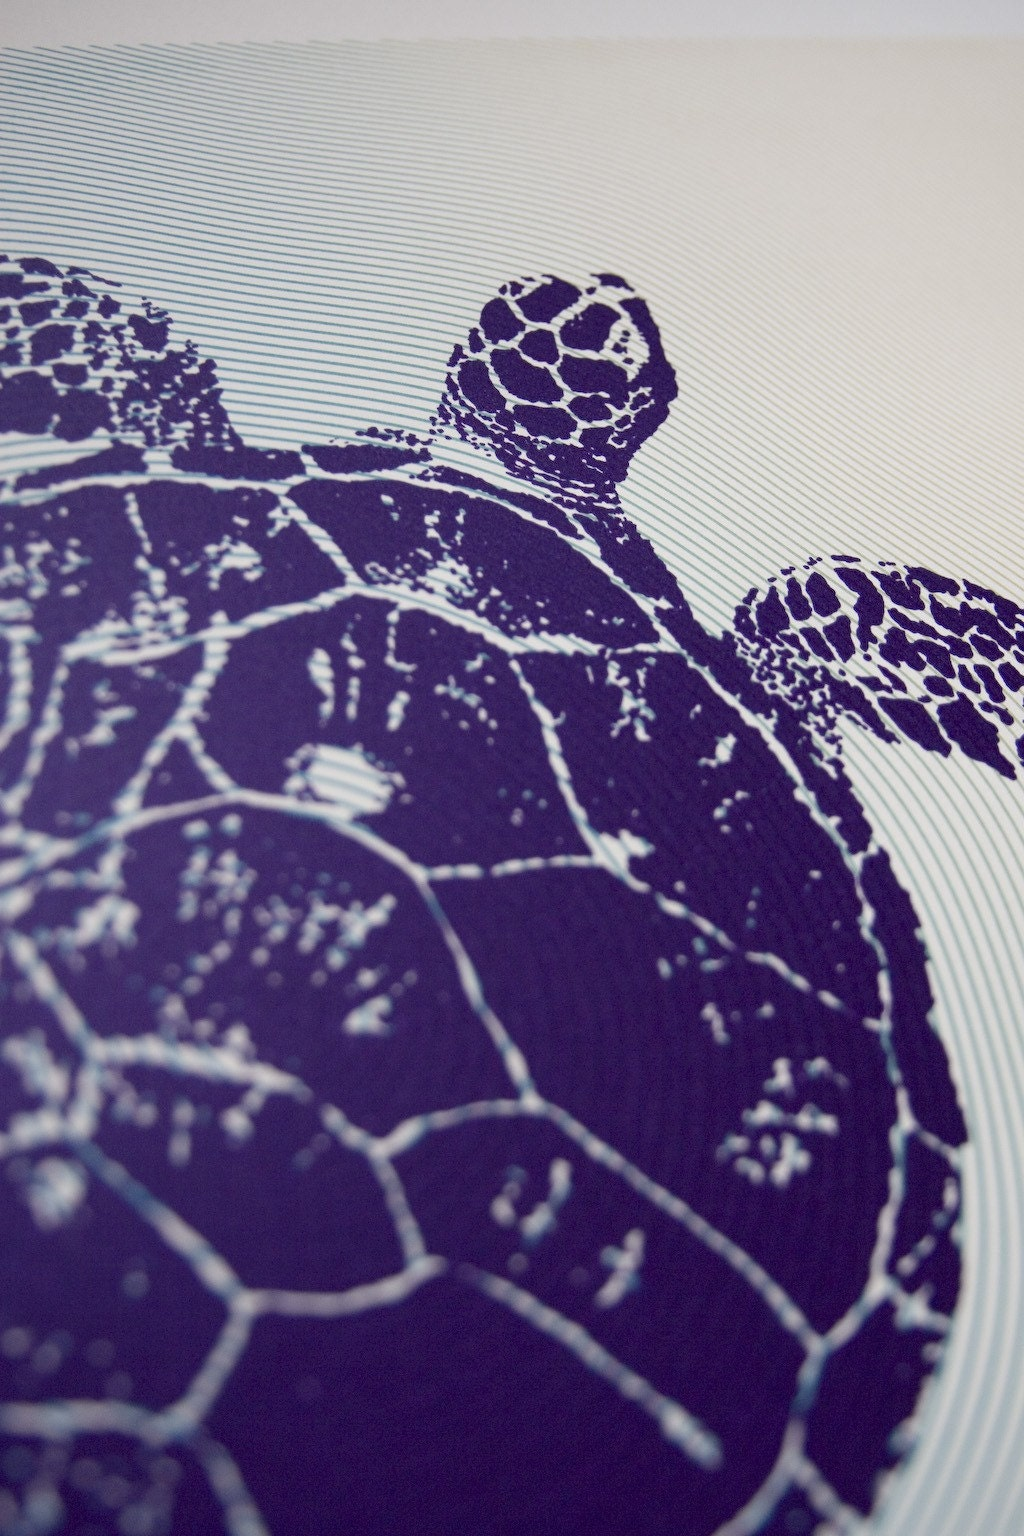 Sea Turtle Poster by VivaDM